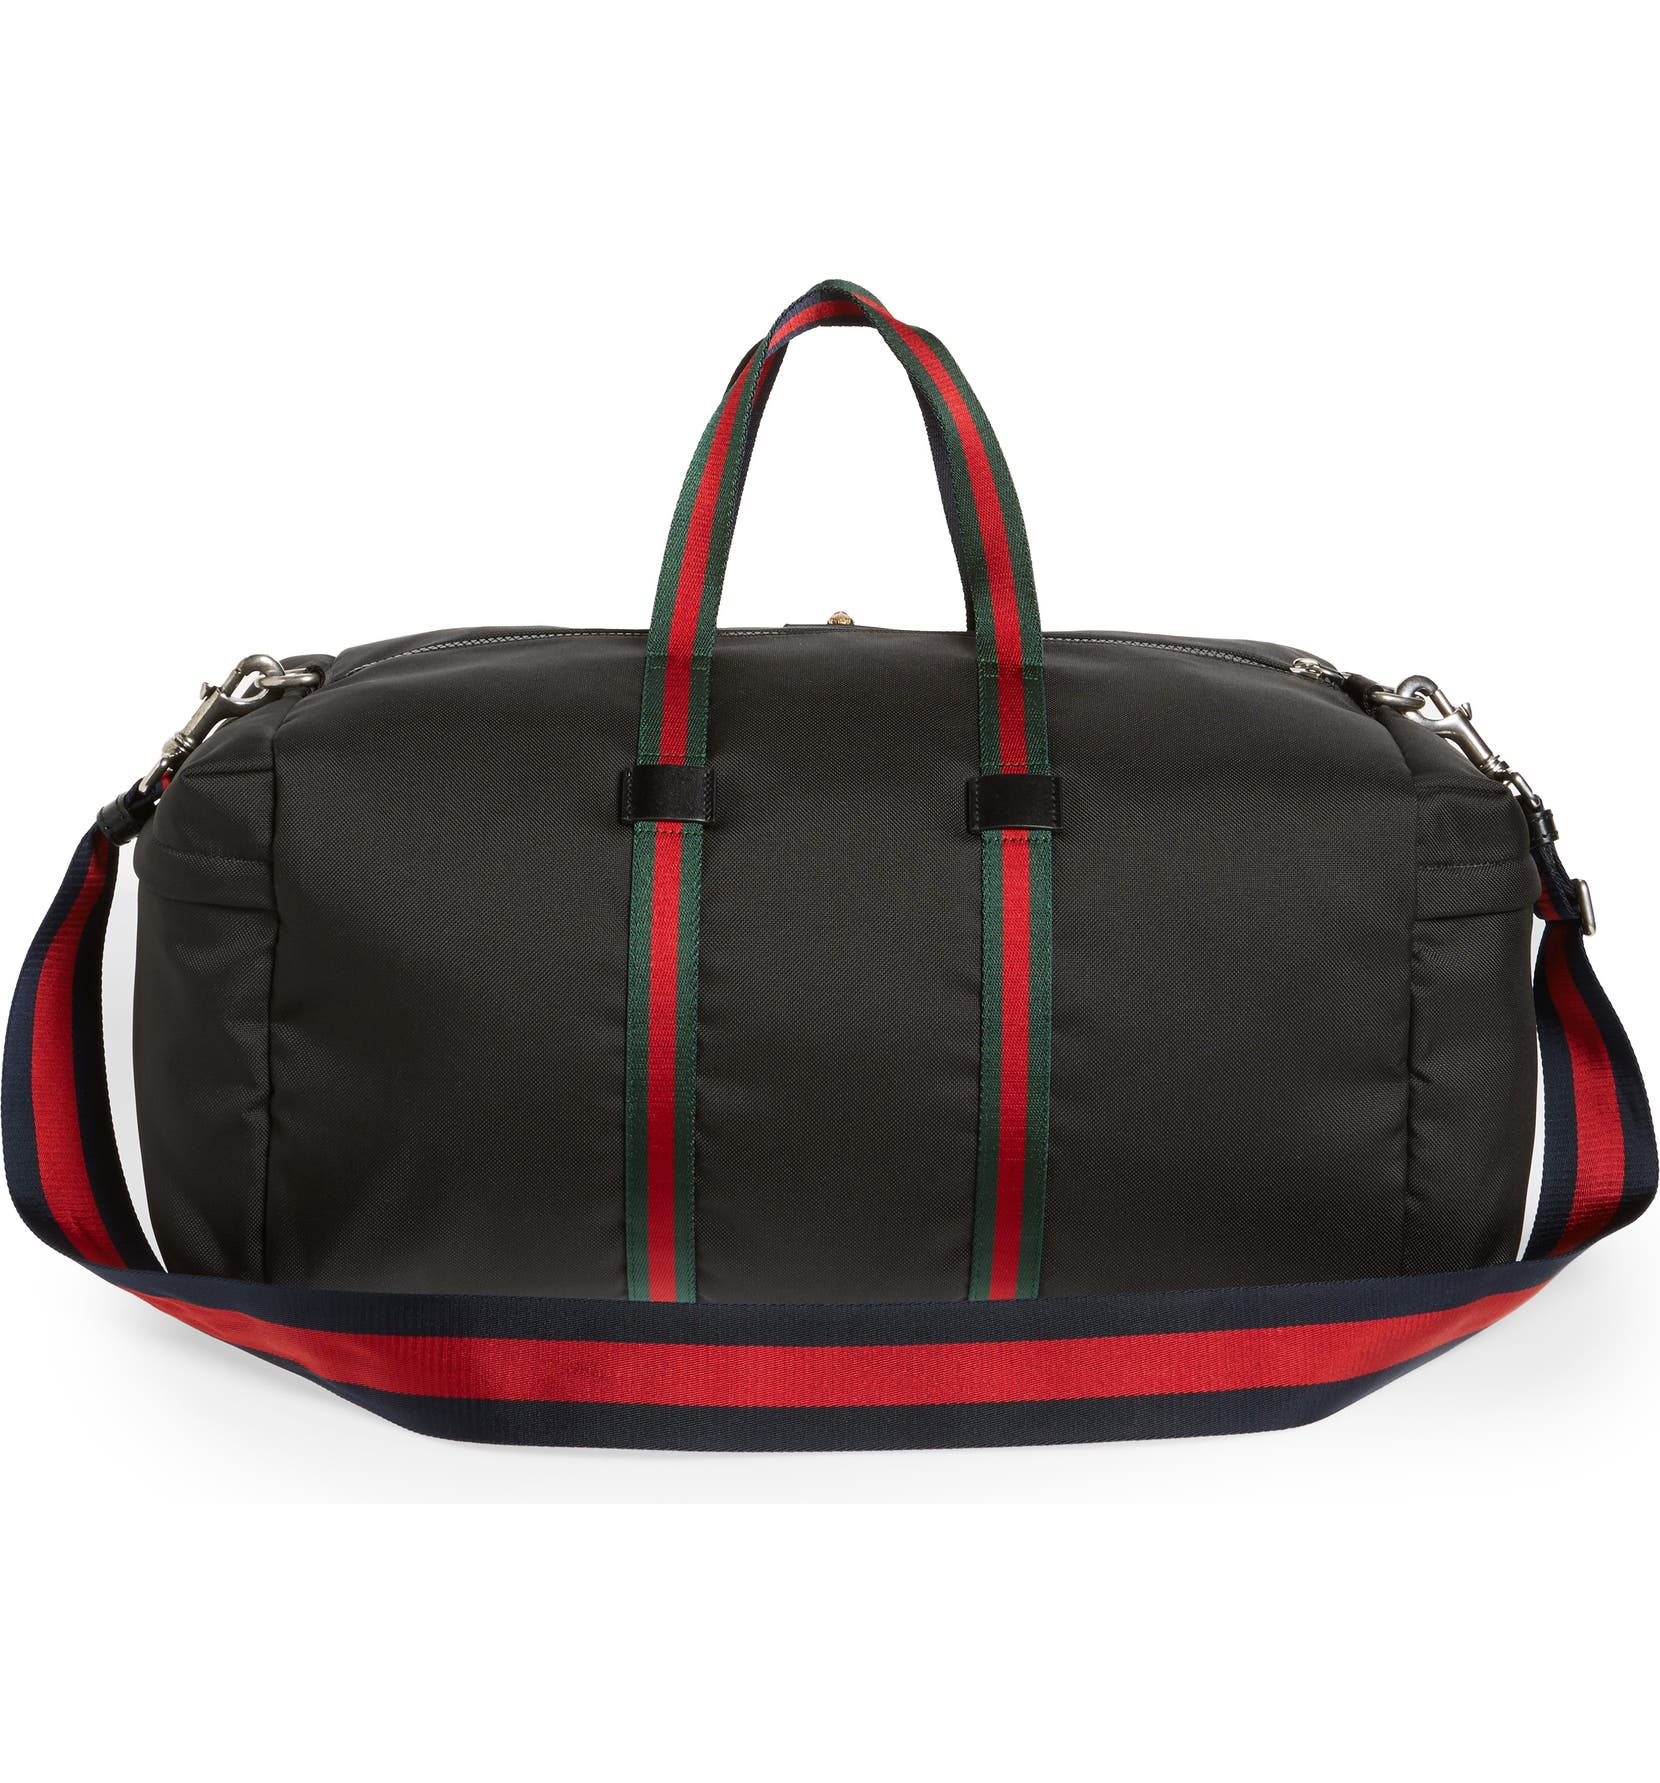 f1b6c6acfe85 Gucci Techpack Canvas Duffle Bag | Nordstrom